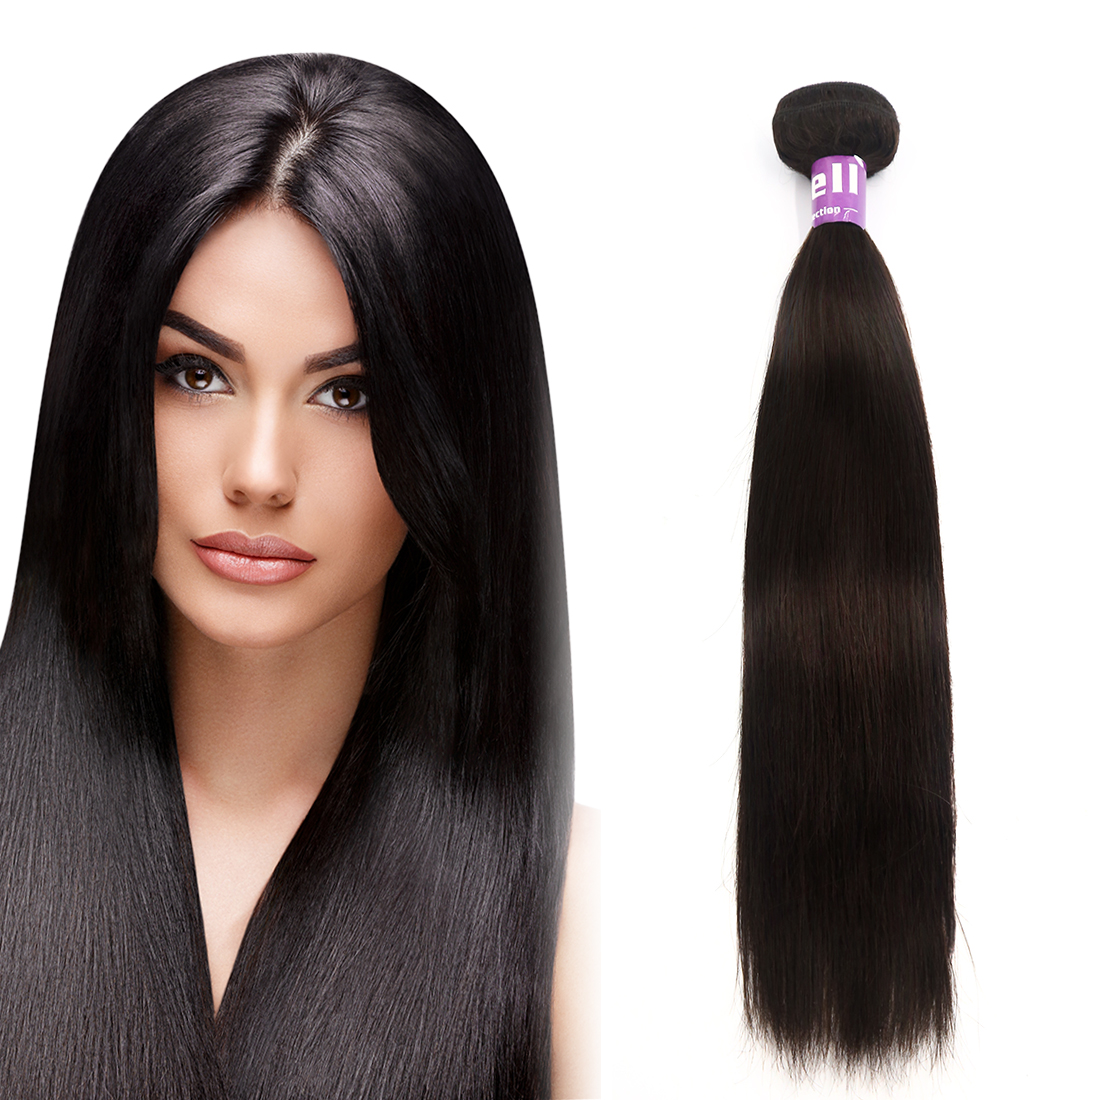 "Peruvian Virgin Silky Straight Human Hair Weave Extensions 7A 12"" 1 Bundle"